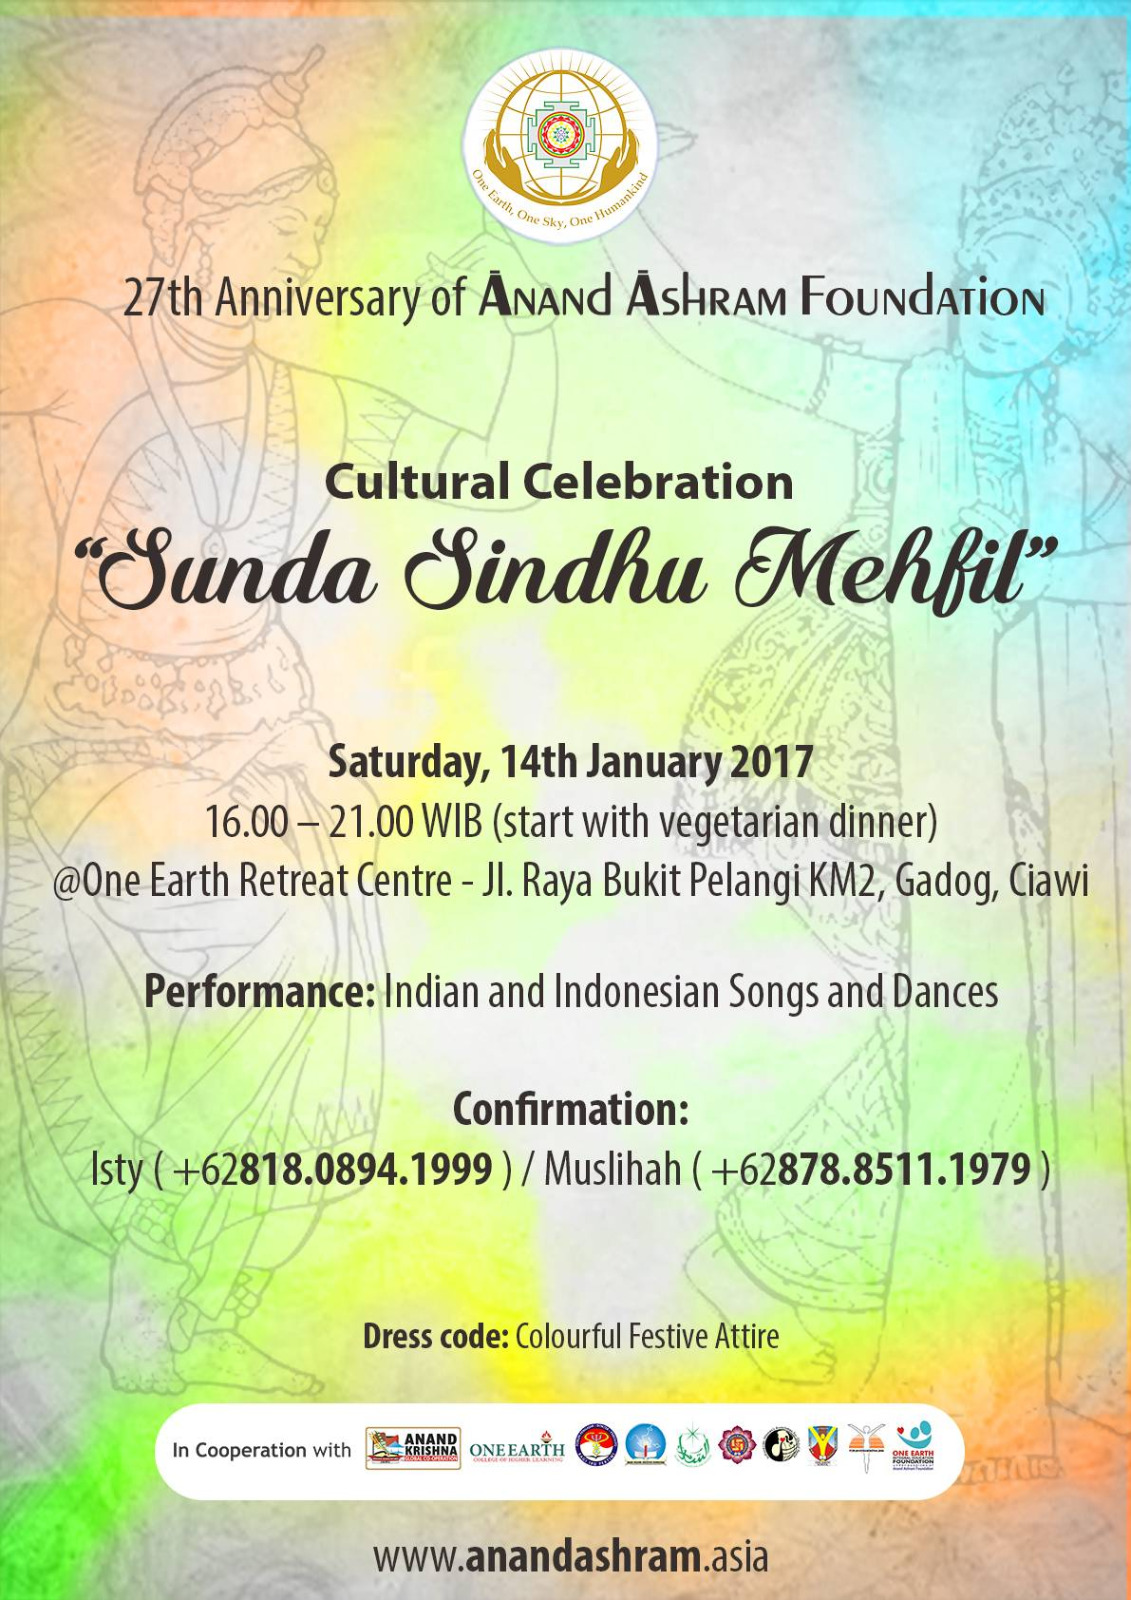 27th Anniversary of Anand Ashram Foundation: Sunda Sindhu Mehfil Cultural Celebration